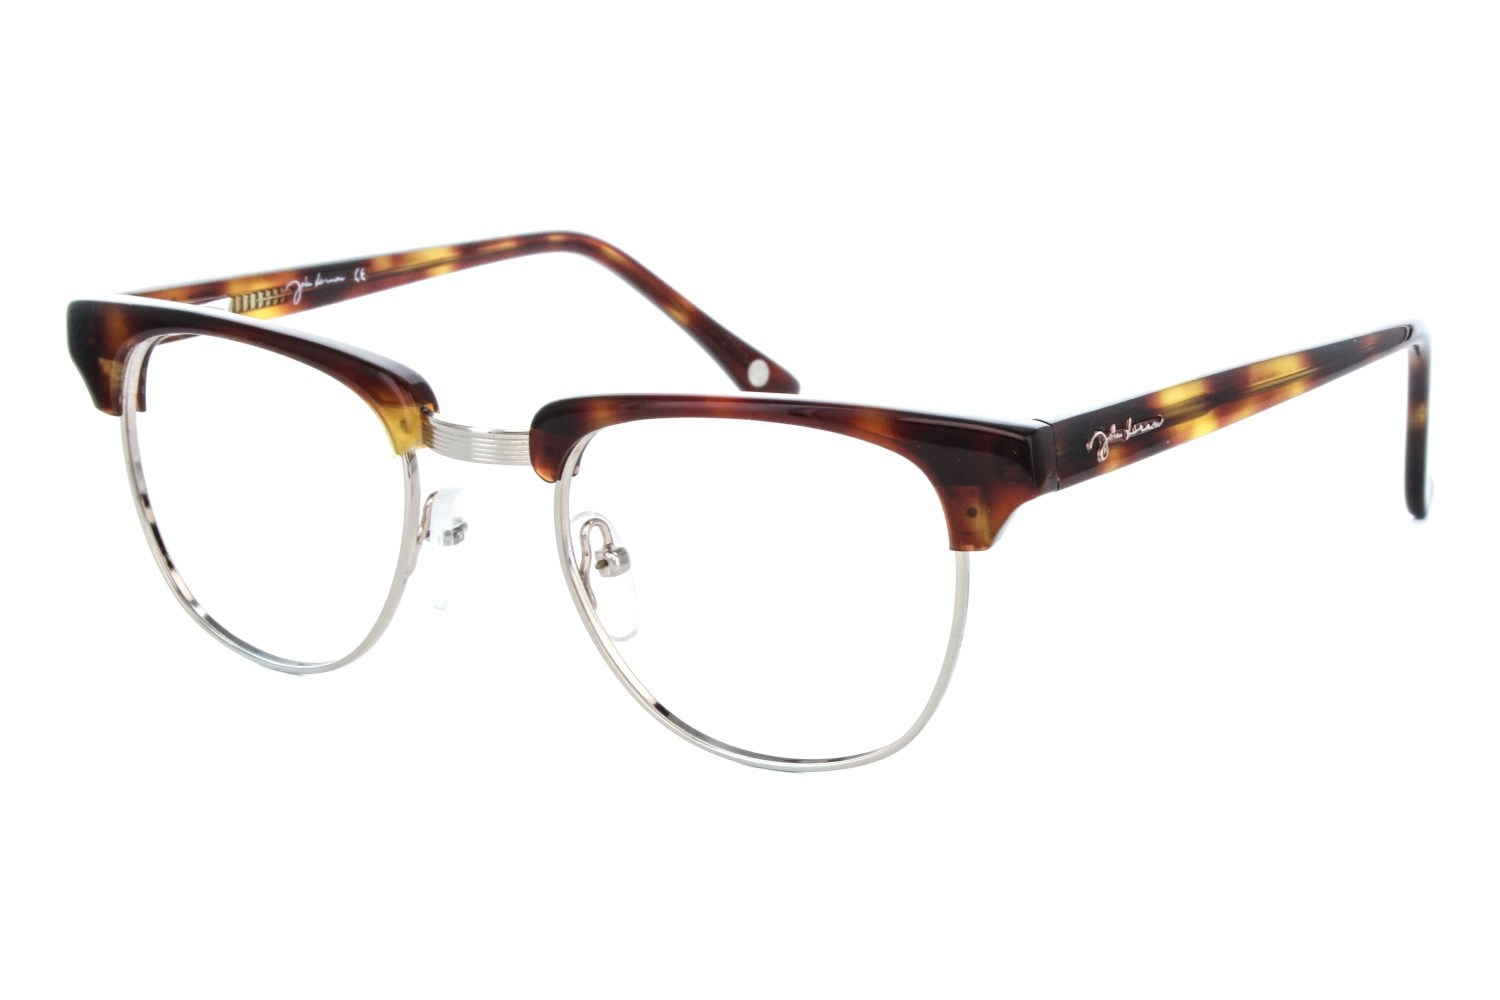 Glasses Frames John Lennon : John Lennon JL 13 Prescription Eyeglasses ...